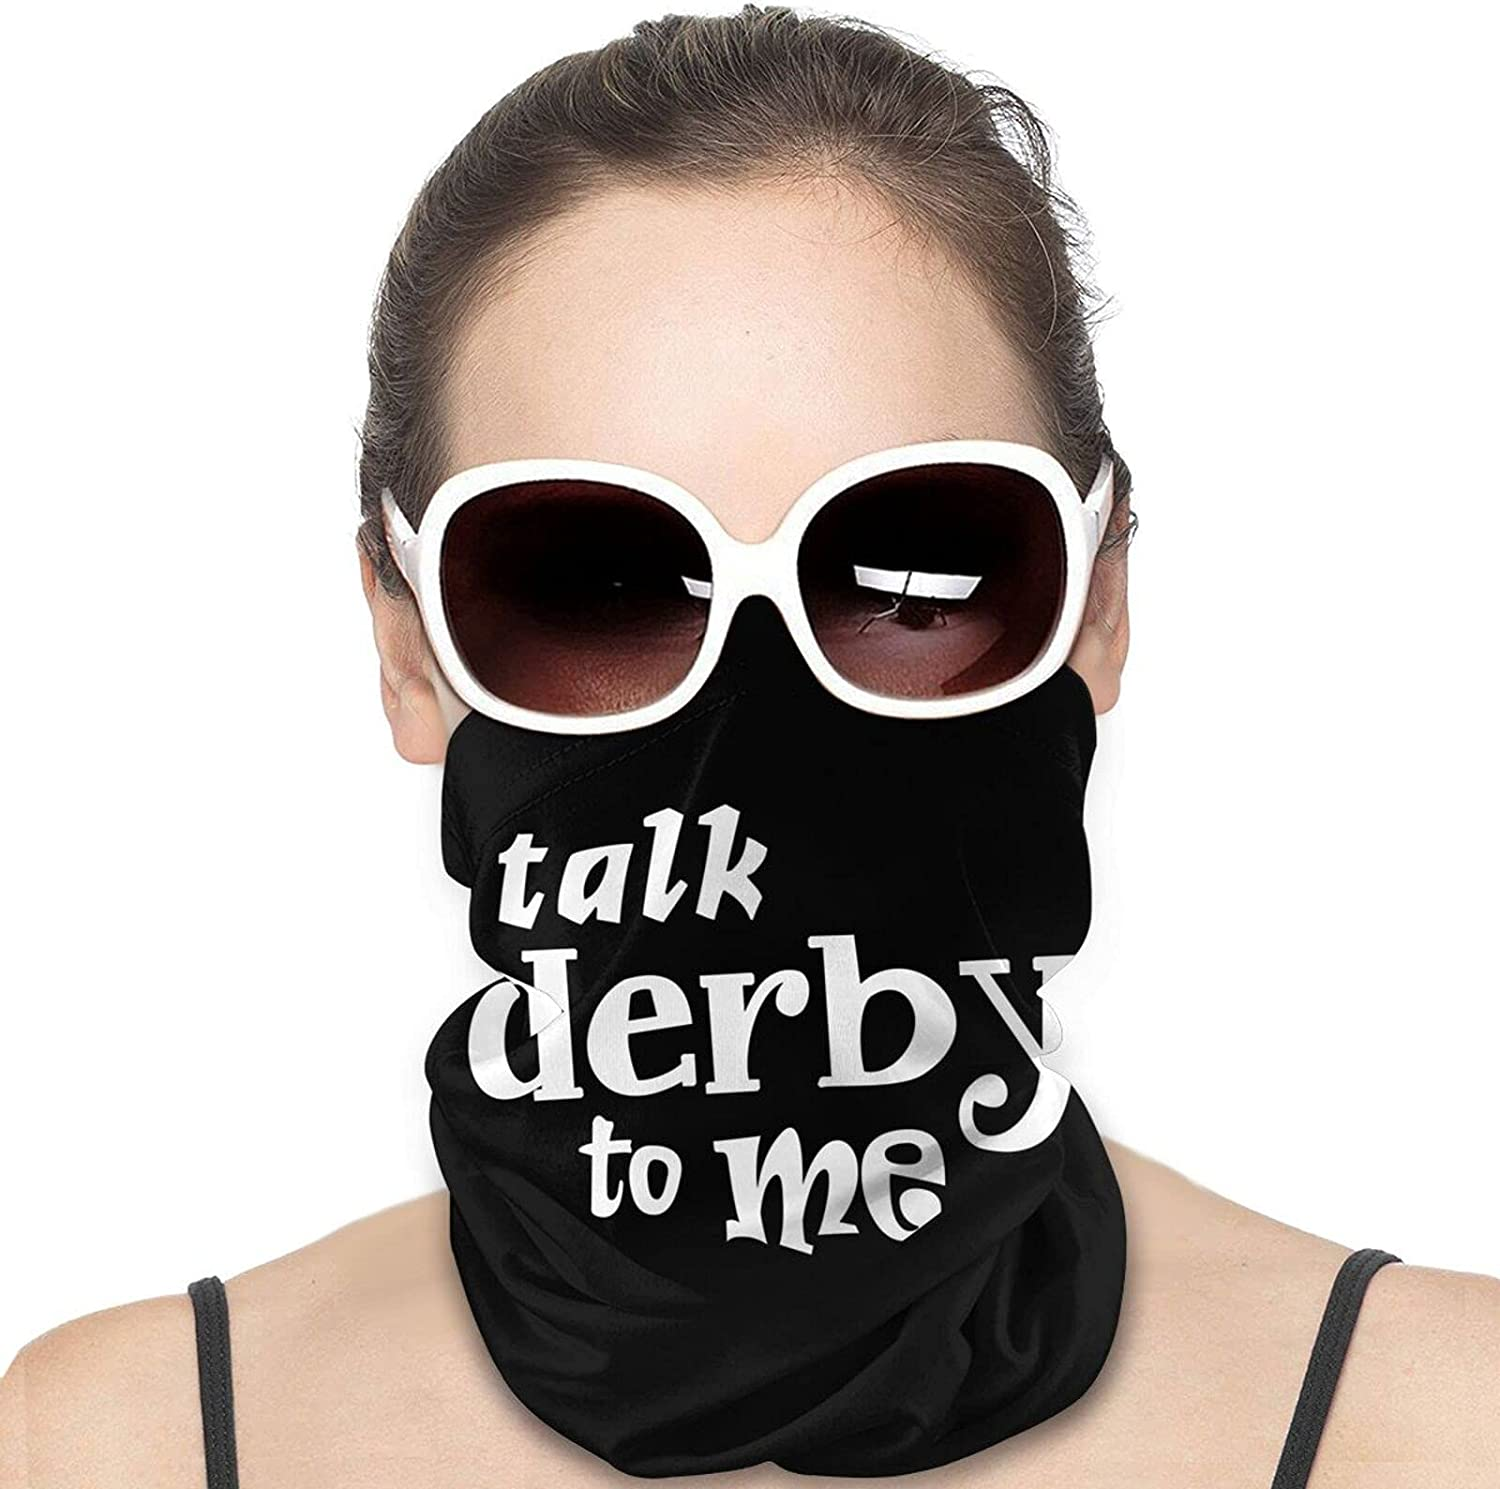 Talk Derby to Me Round Neck Gaiter Bandnas Face Cover Uv Protection Prevent bask in Ice Scarf Headbands Perfect for Motorcycle Cycling Running Festival Raves Outdoors